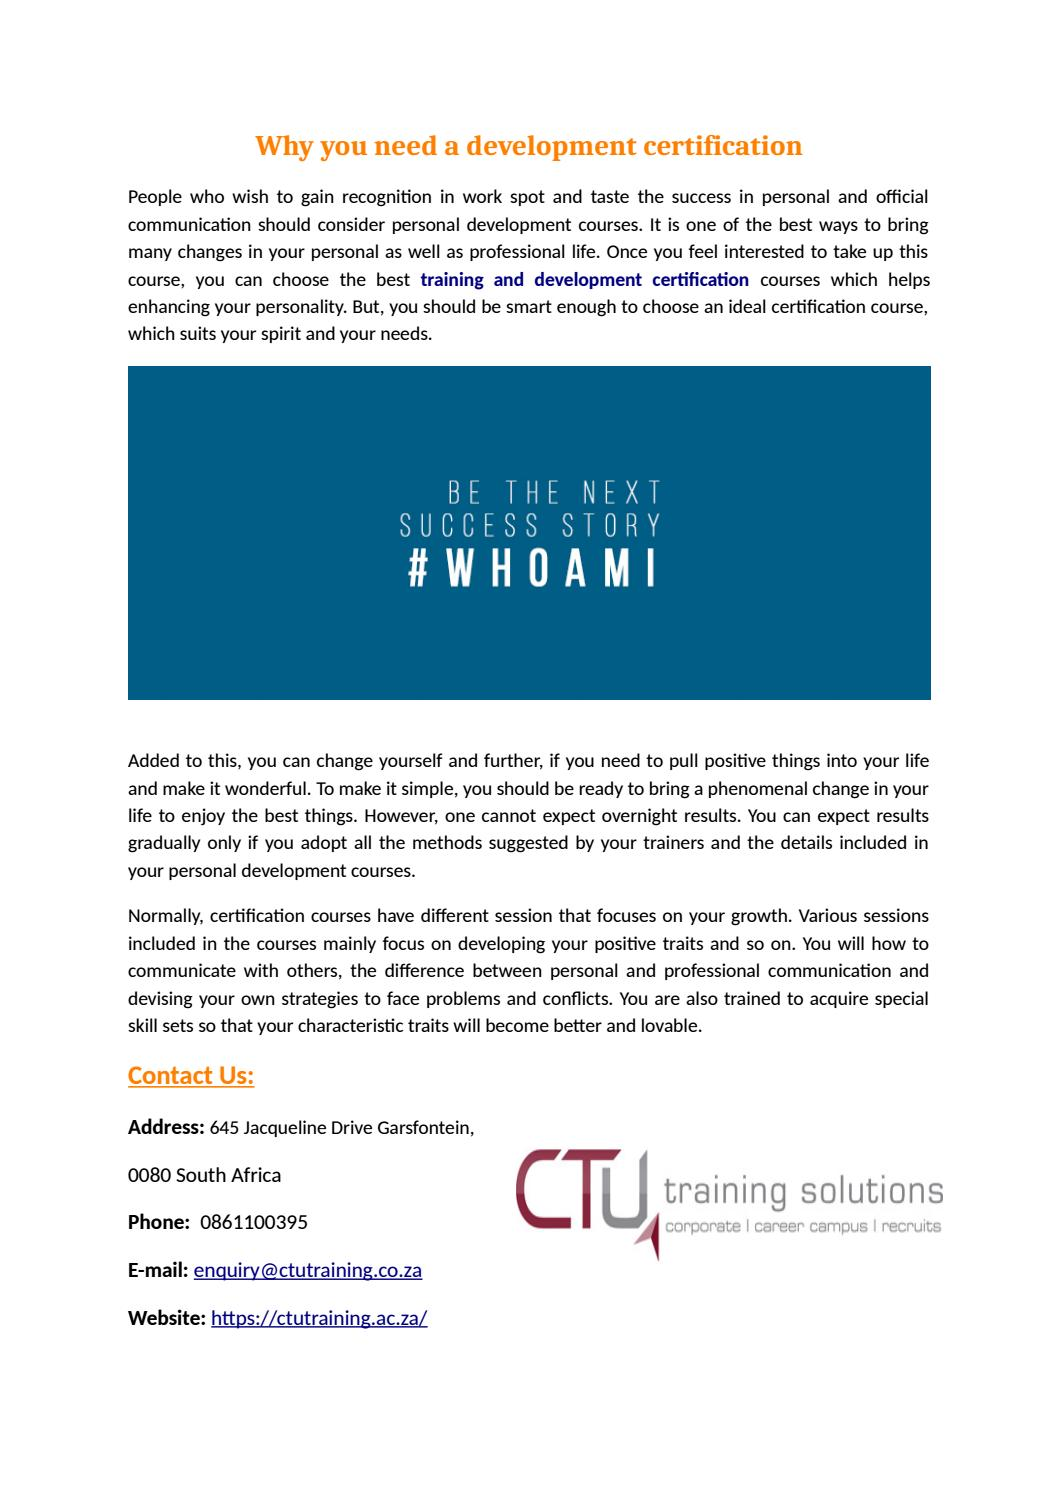 Training And Development Certification By Ctu Training Solutions Issuu